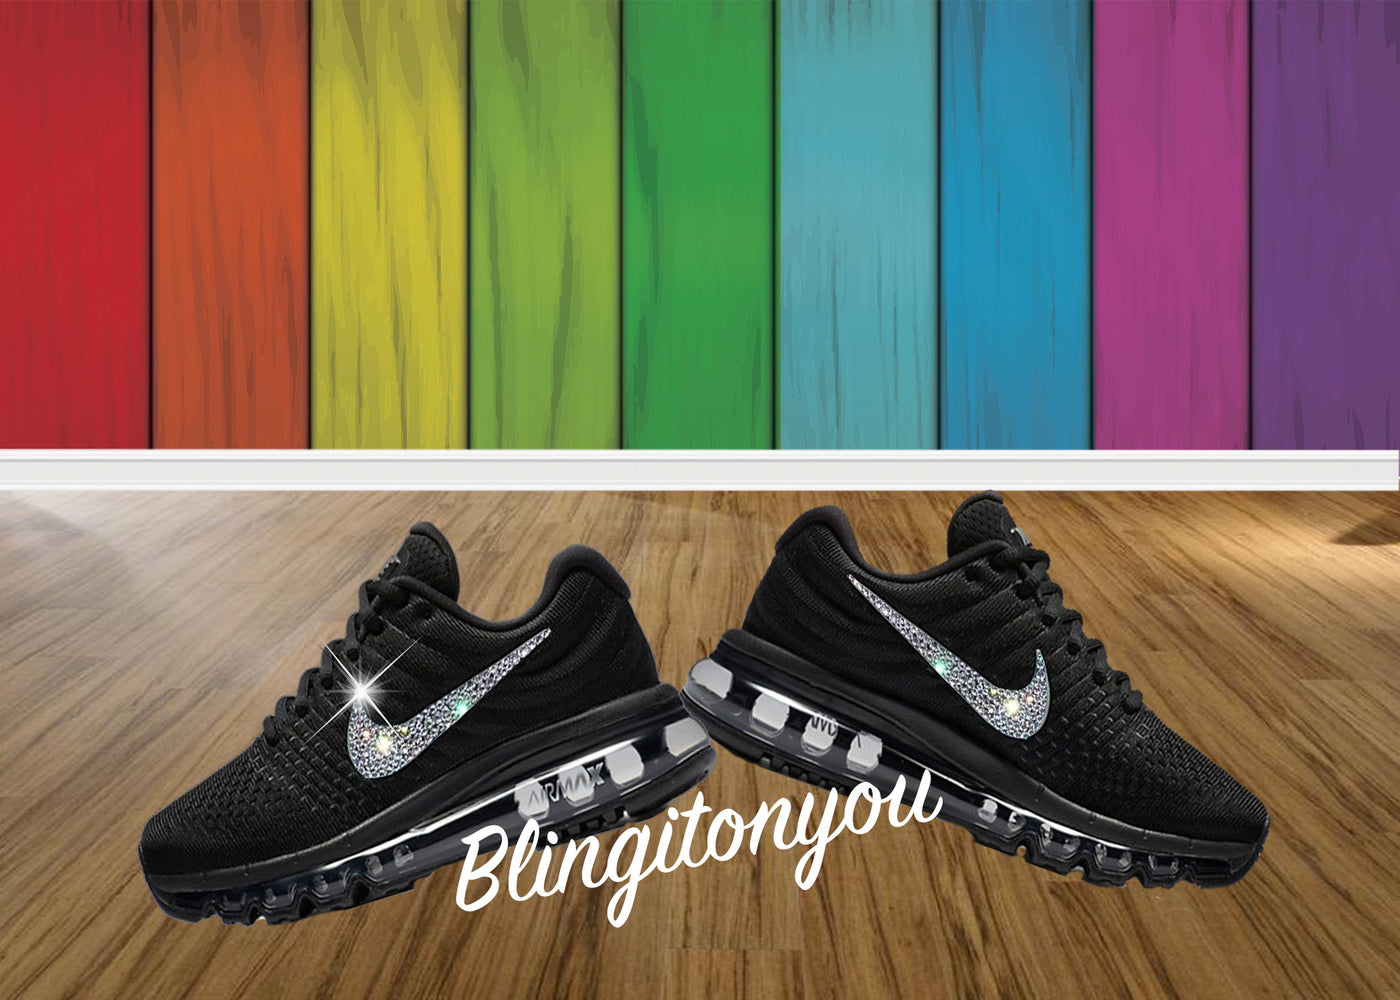 Women's Black Nike Air Max 2017 Shoes Bedazzled with Swarovski